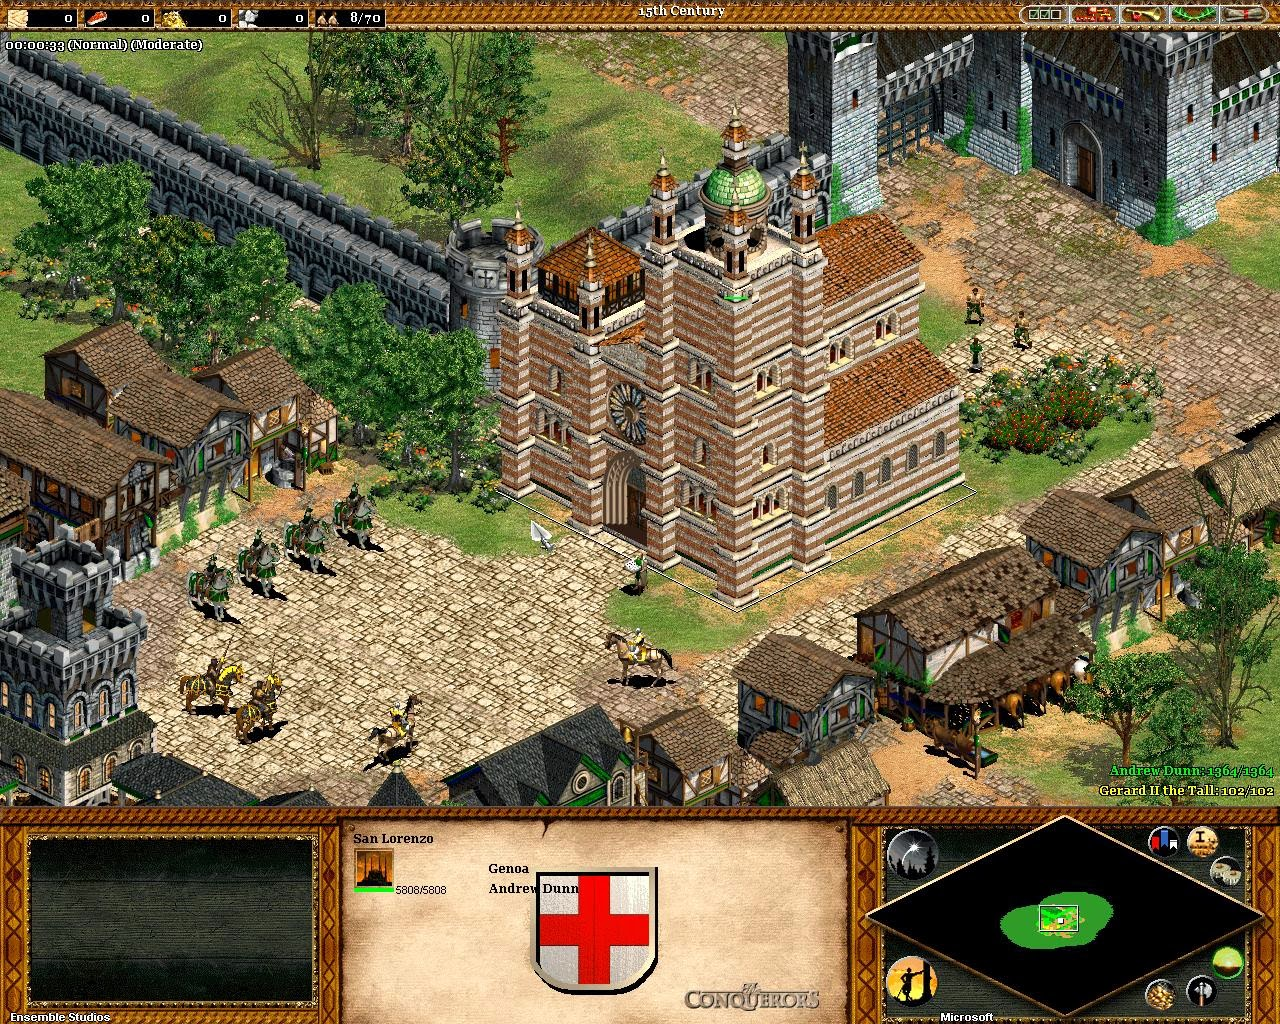 download game age of empires apk offline